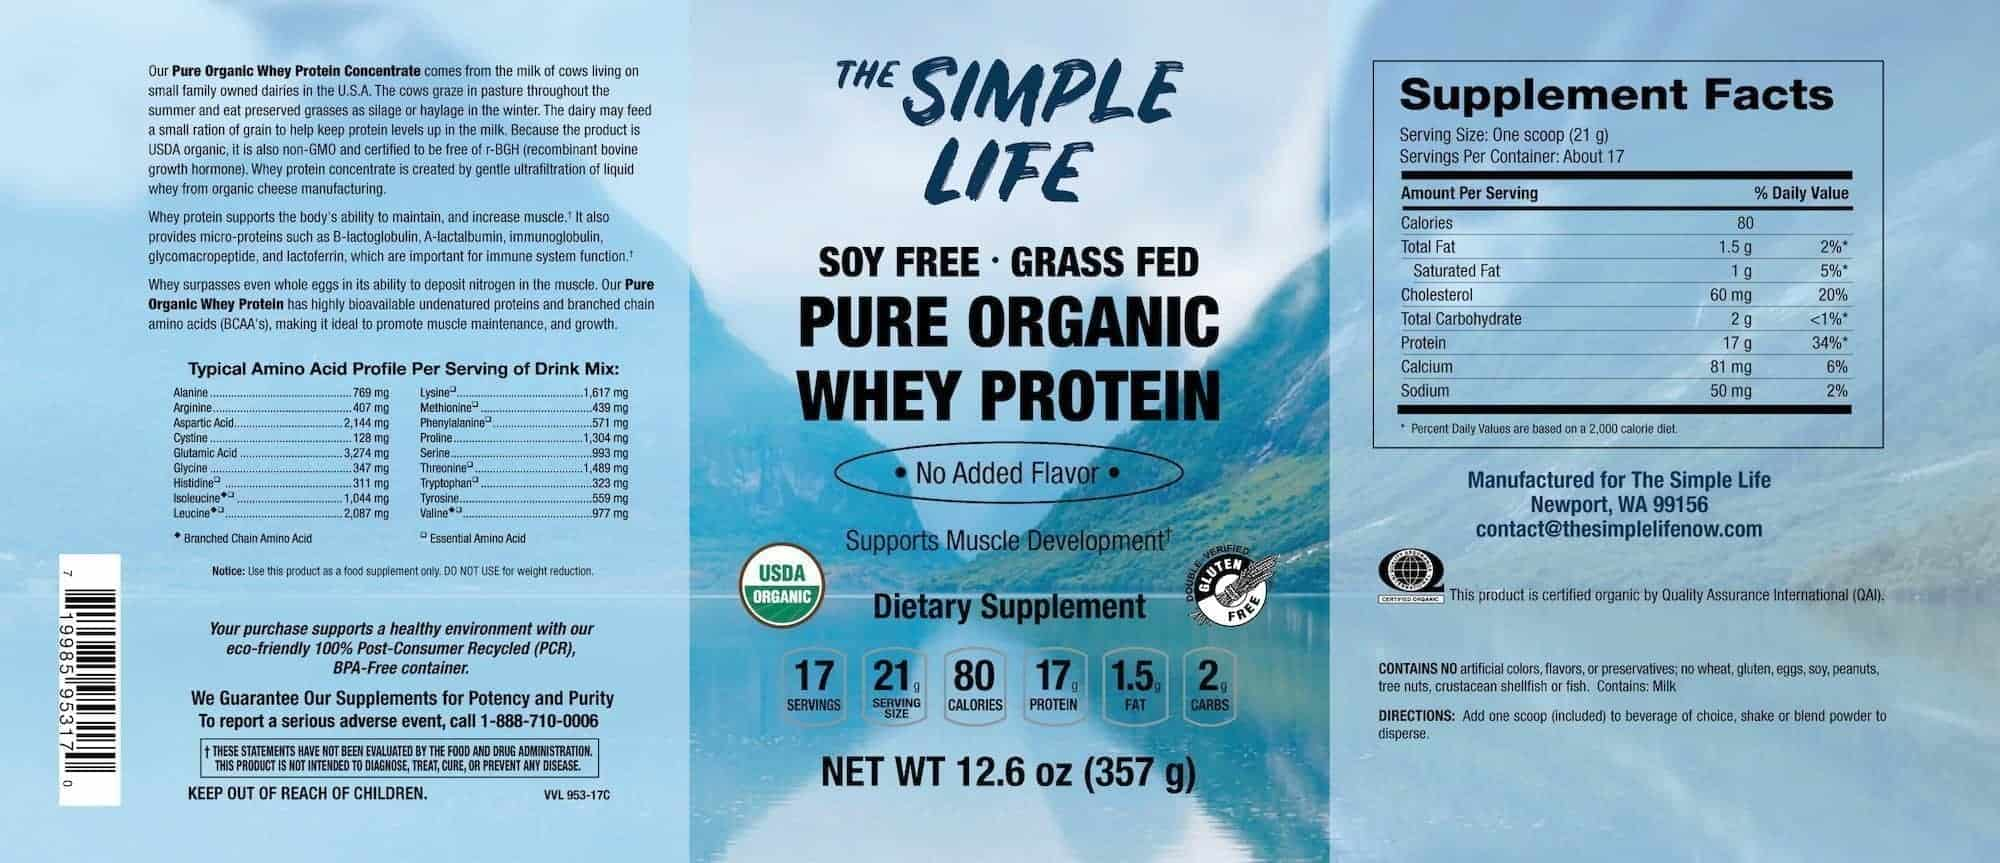 Organic Whey Label